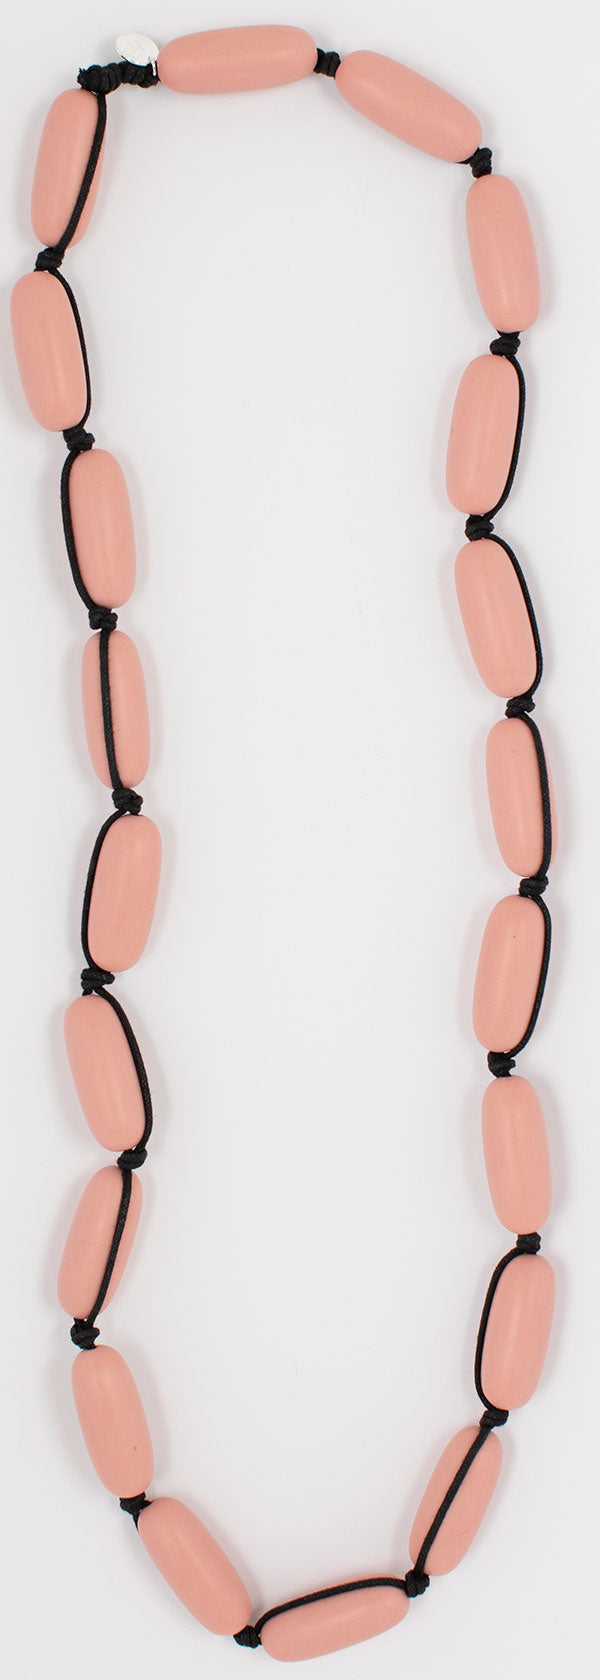 Evie Marques Original necklace Sunset on black cord